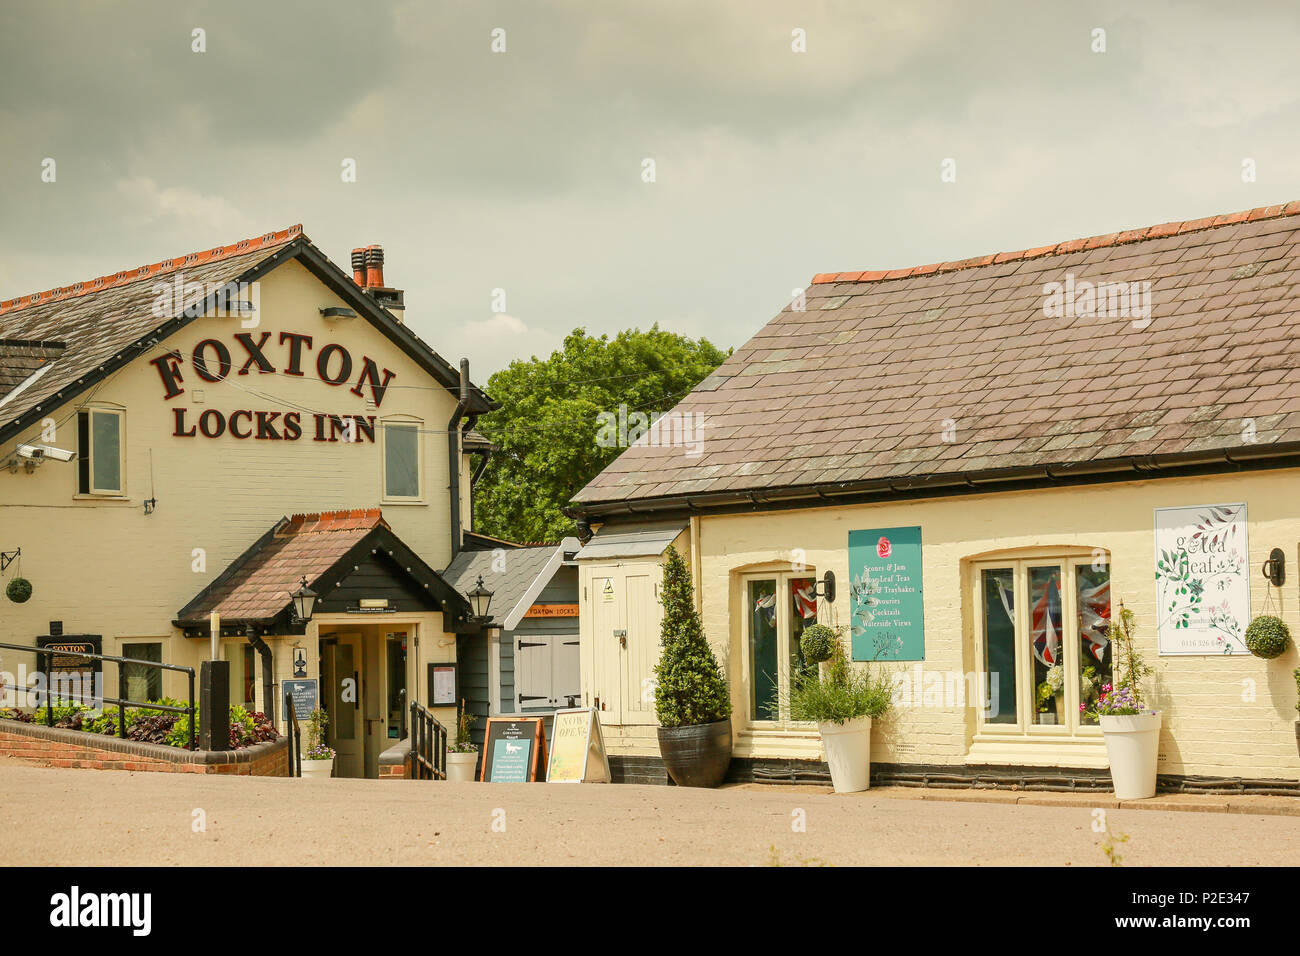 The restaurant and pub at Foxton Locks - Stock Image